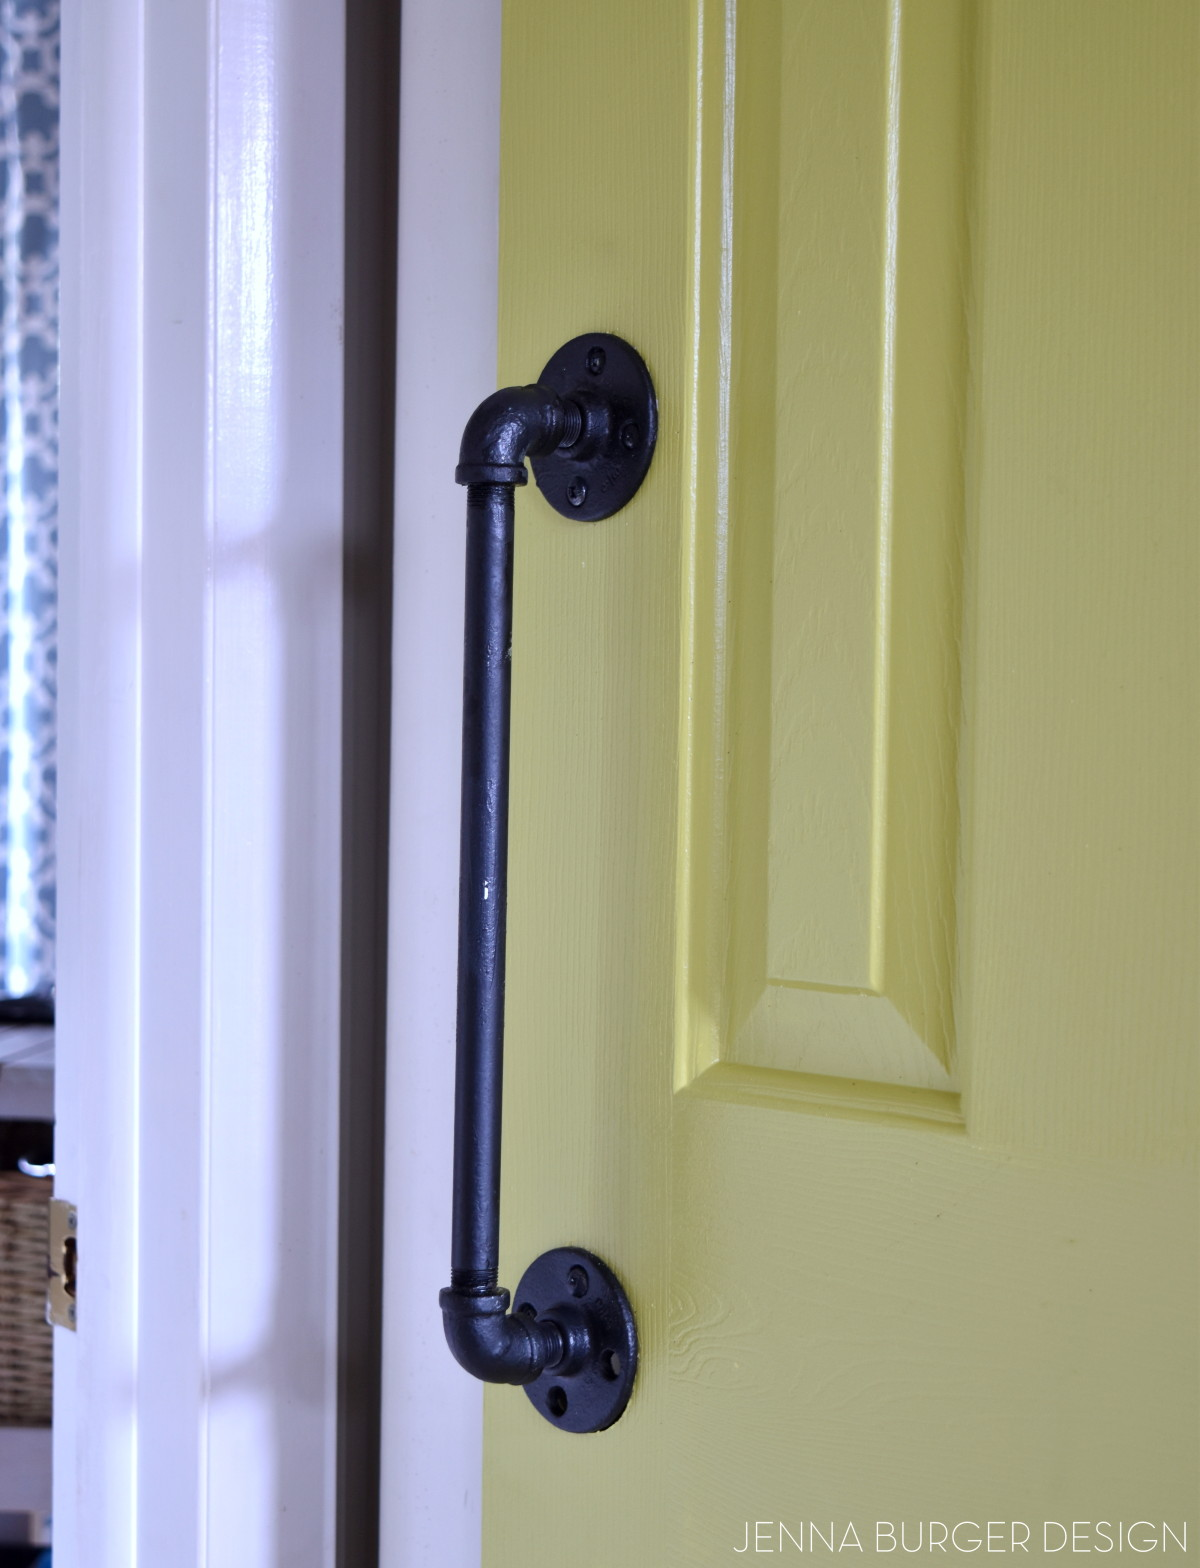 DIY Rolling Door Hardware using Plumbing Pipe - Jenna Burger